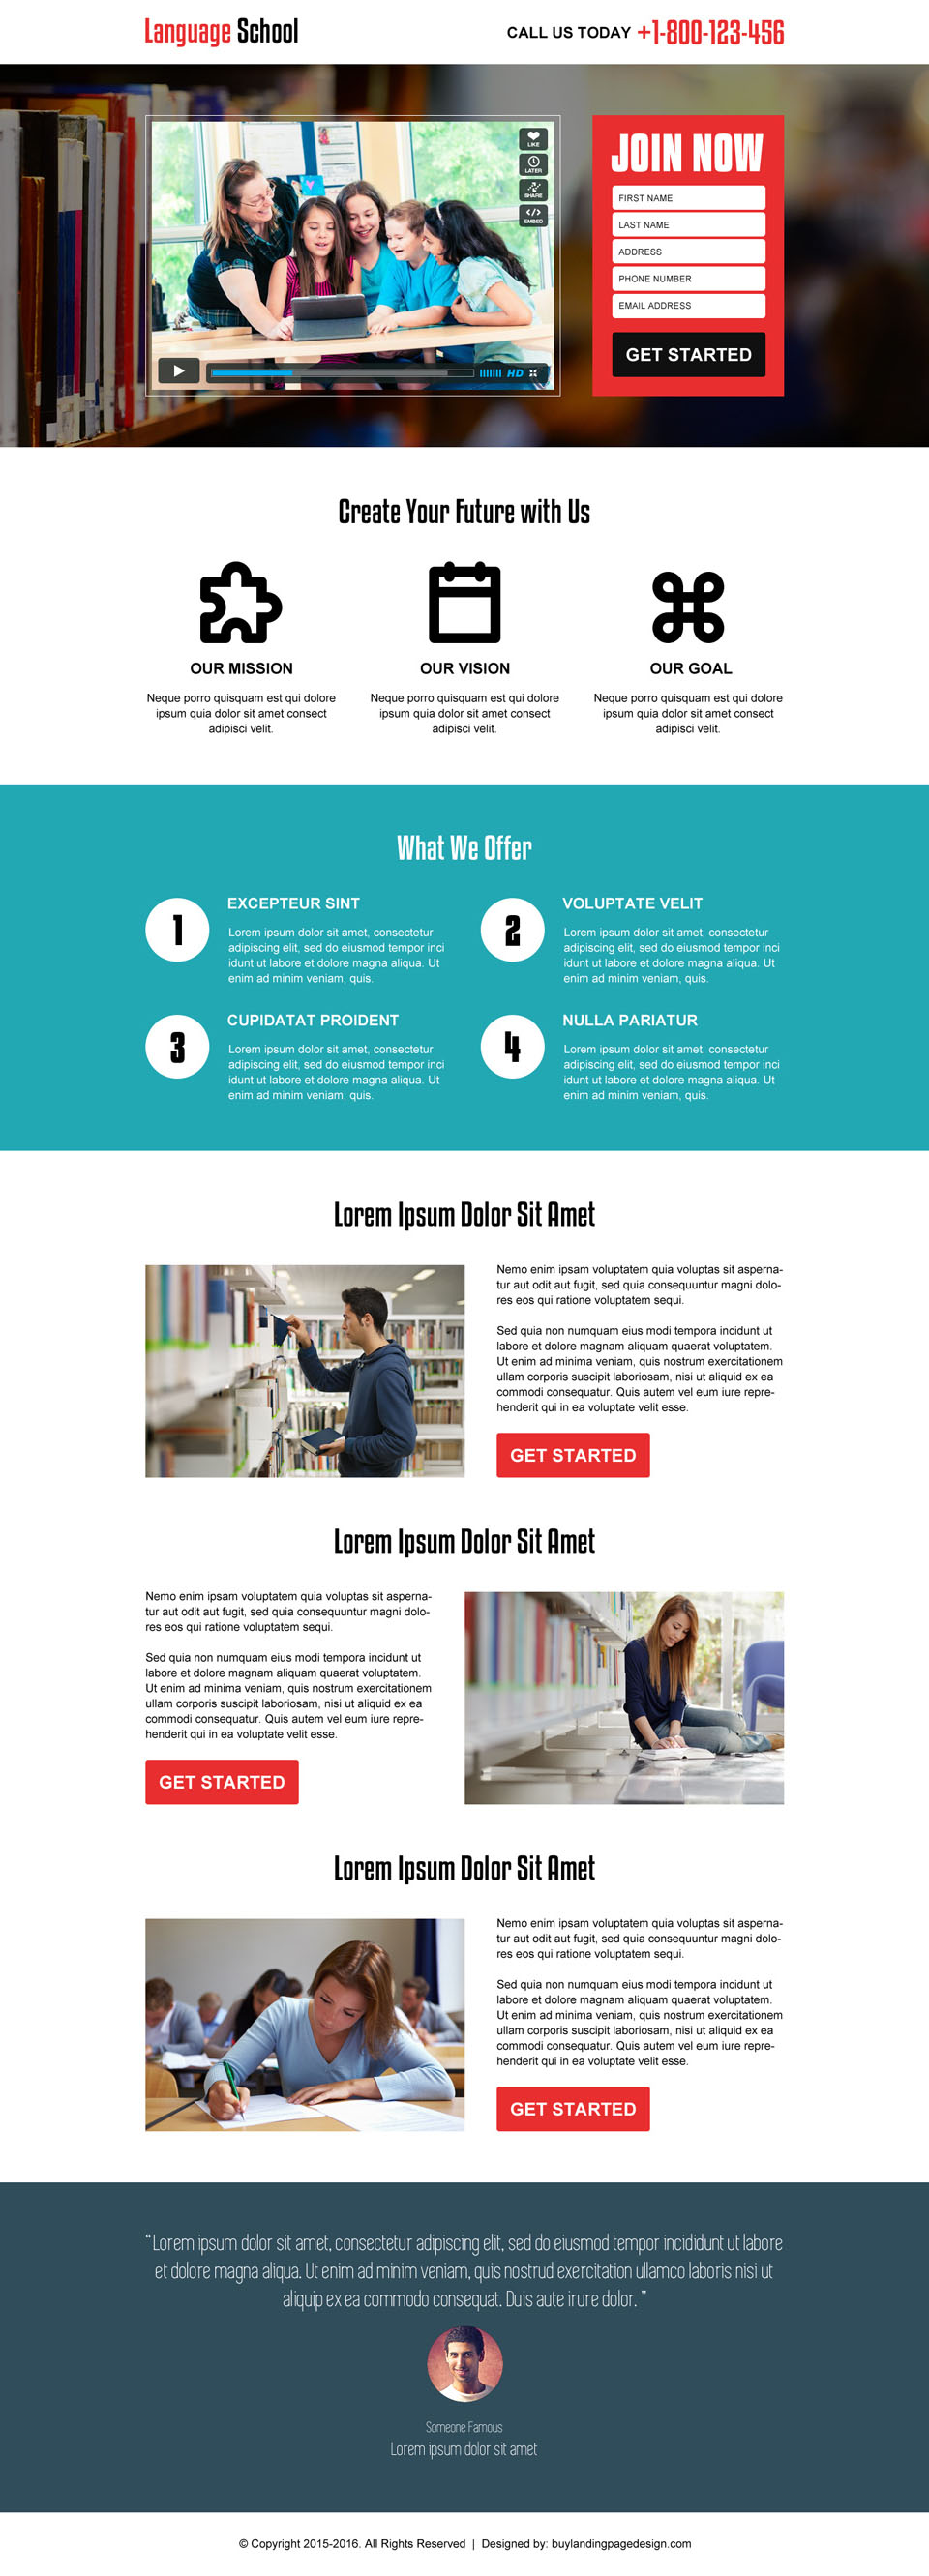 best-education-video-responsive-landing-page-design-template-to-capture-education-leads-003